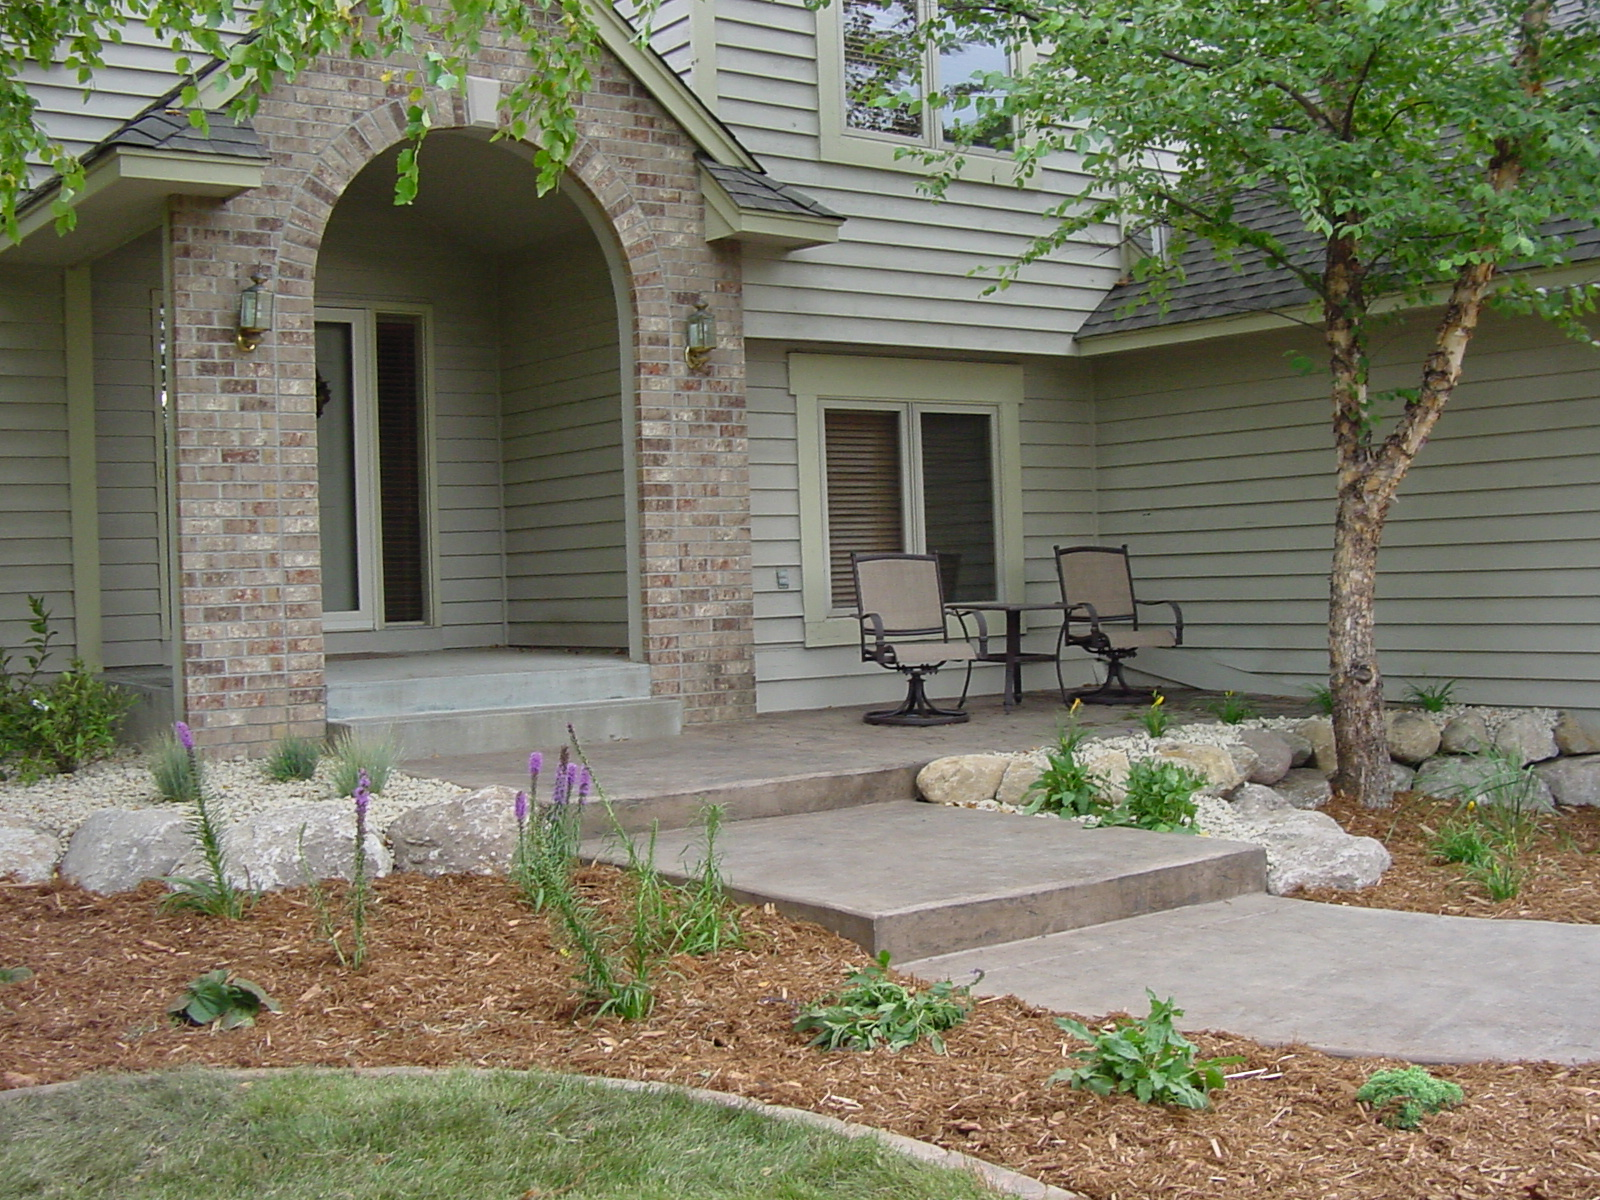 stamped concrete walkway - Residential Landscape Design Ideas